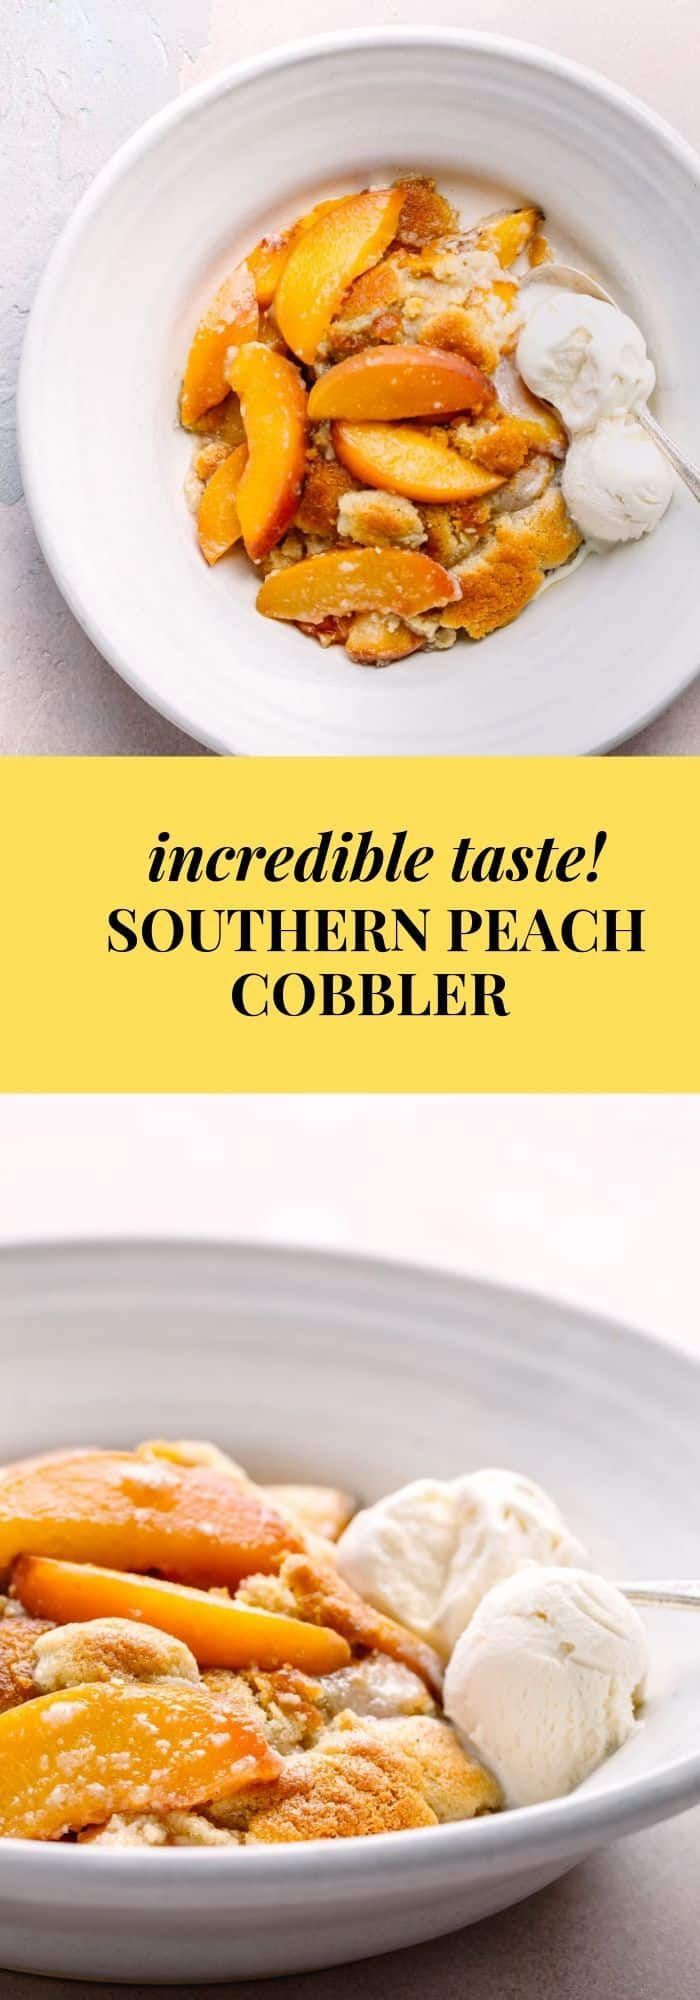 Southern Peach Cobbler Recipe - Best Ever! | Posh Journal #peachcobblercheesecake Southern Peach Cobbler Recipe - Best Ever! | Posh Journal #peachcobblercheesecake